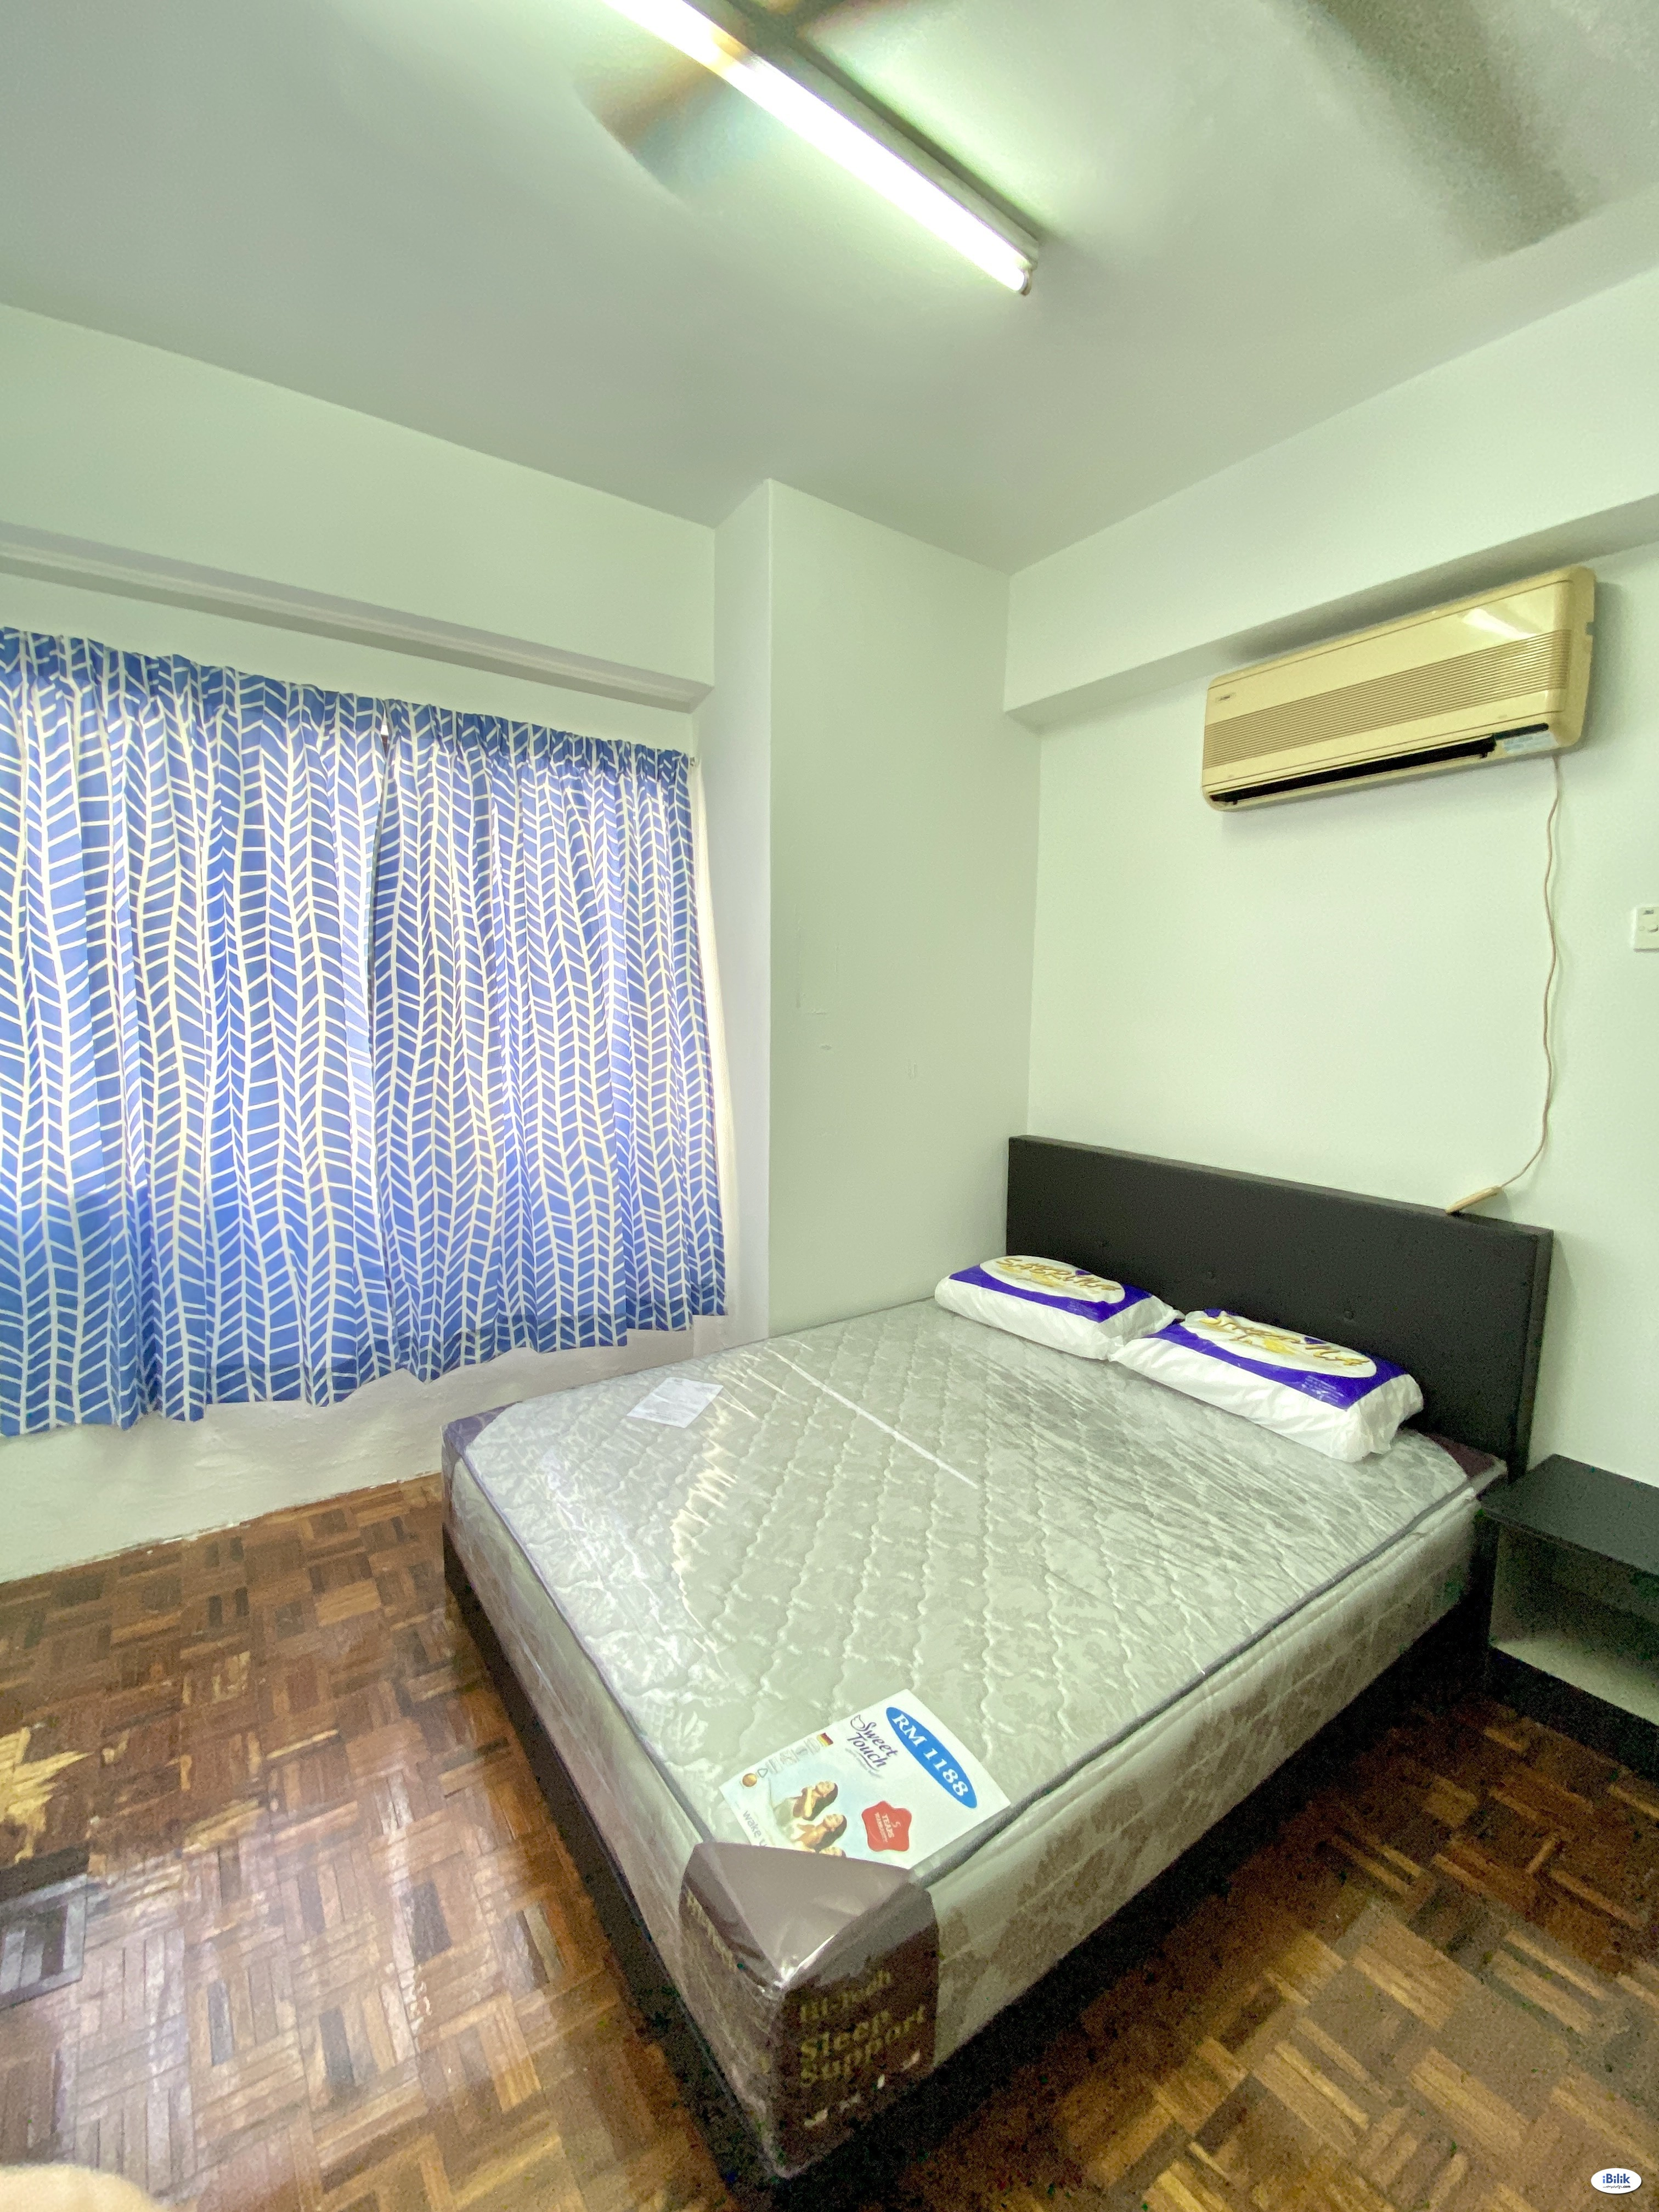 Middle Room with include all utilities, wifi n ac. 包水电Wi-Fi冷气